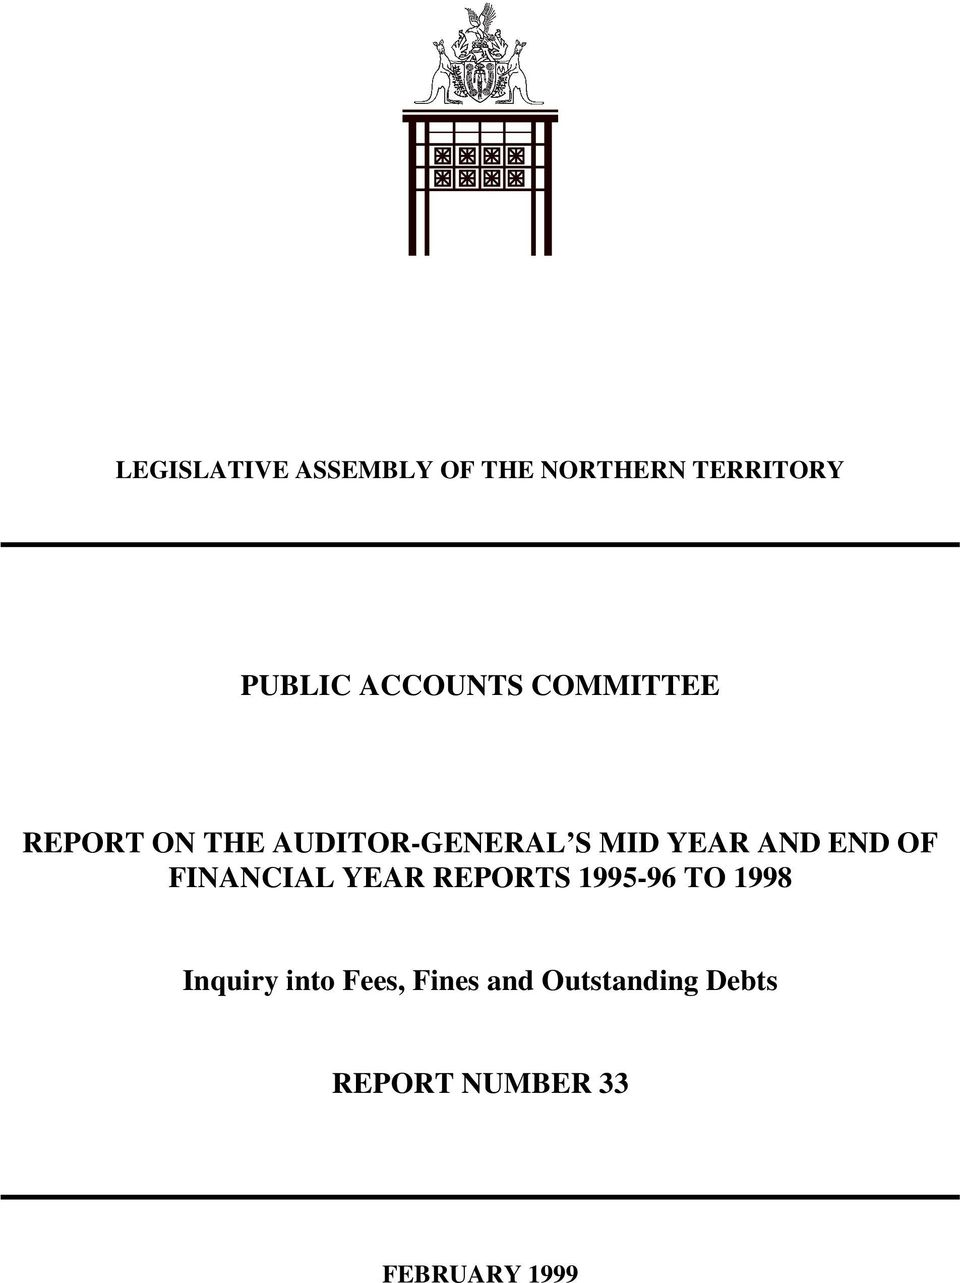 AND END OF FINANCIAL YEAR REPORTS 1995-96 TO 1998 Inquiry